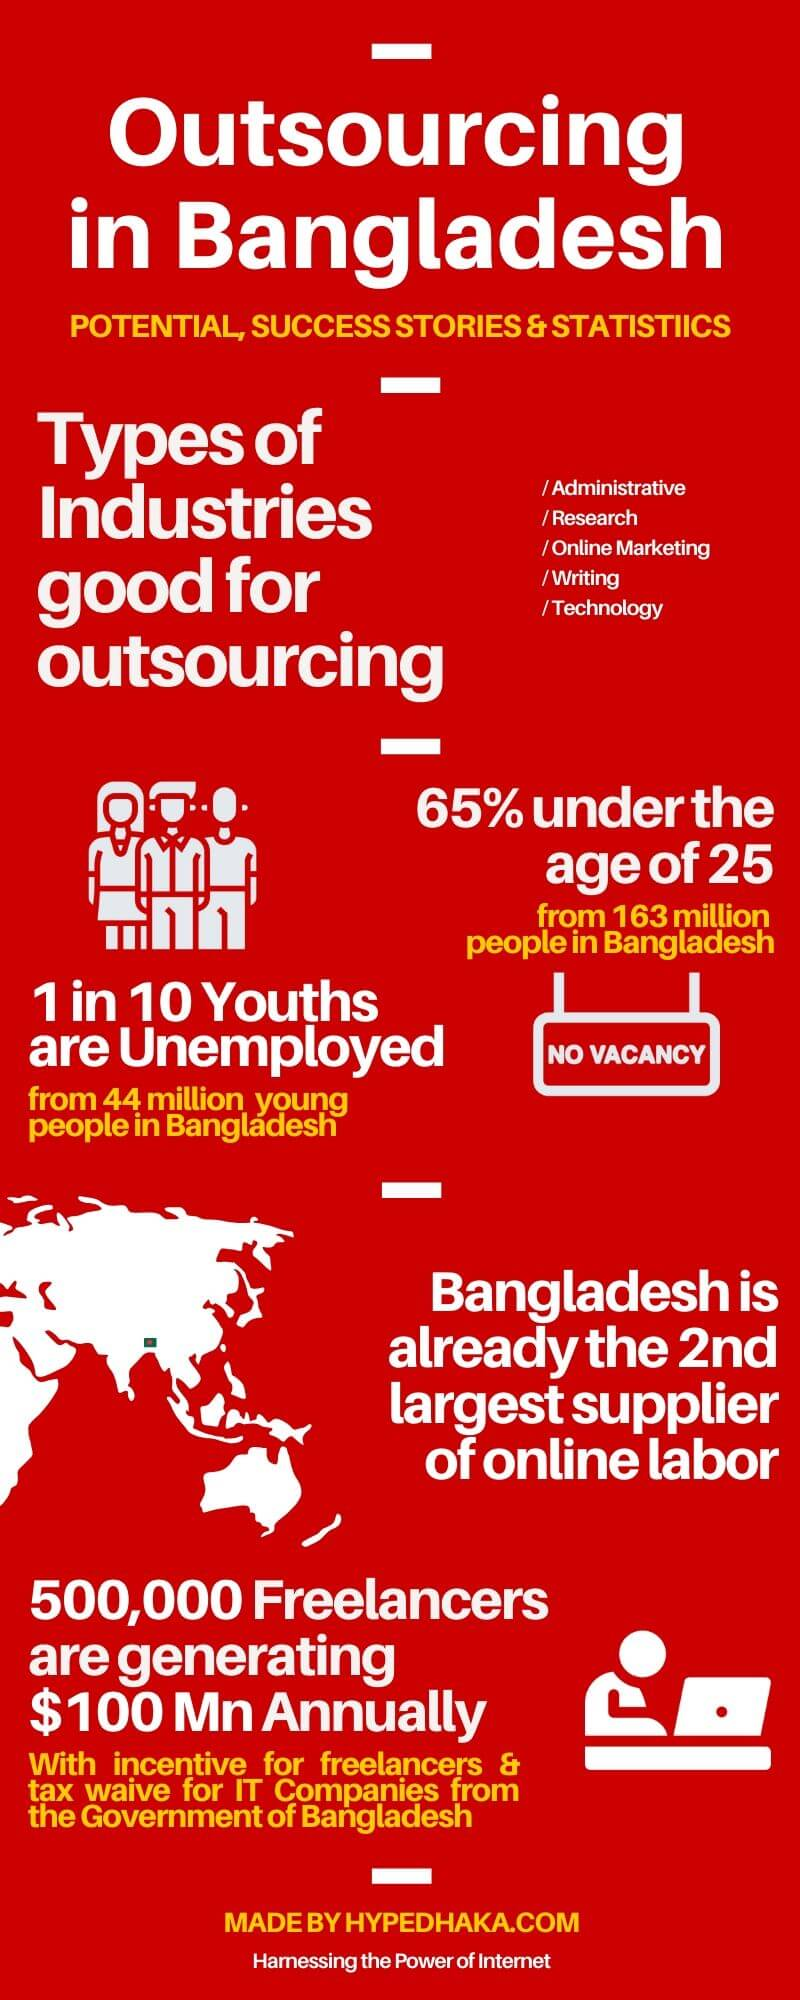 Outsourcing in Bangladesh 2020 stats